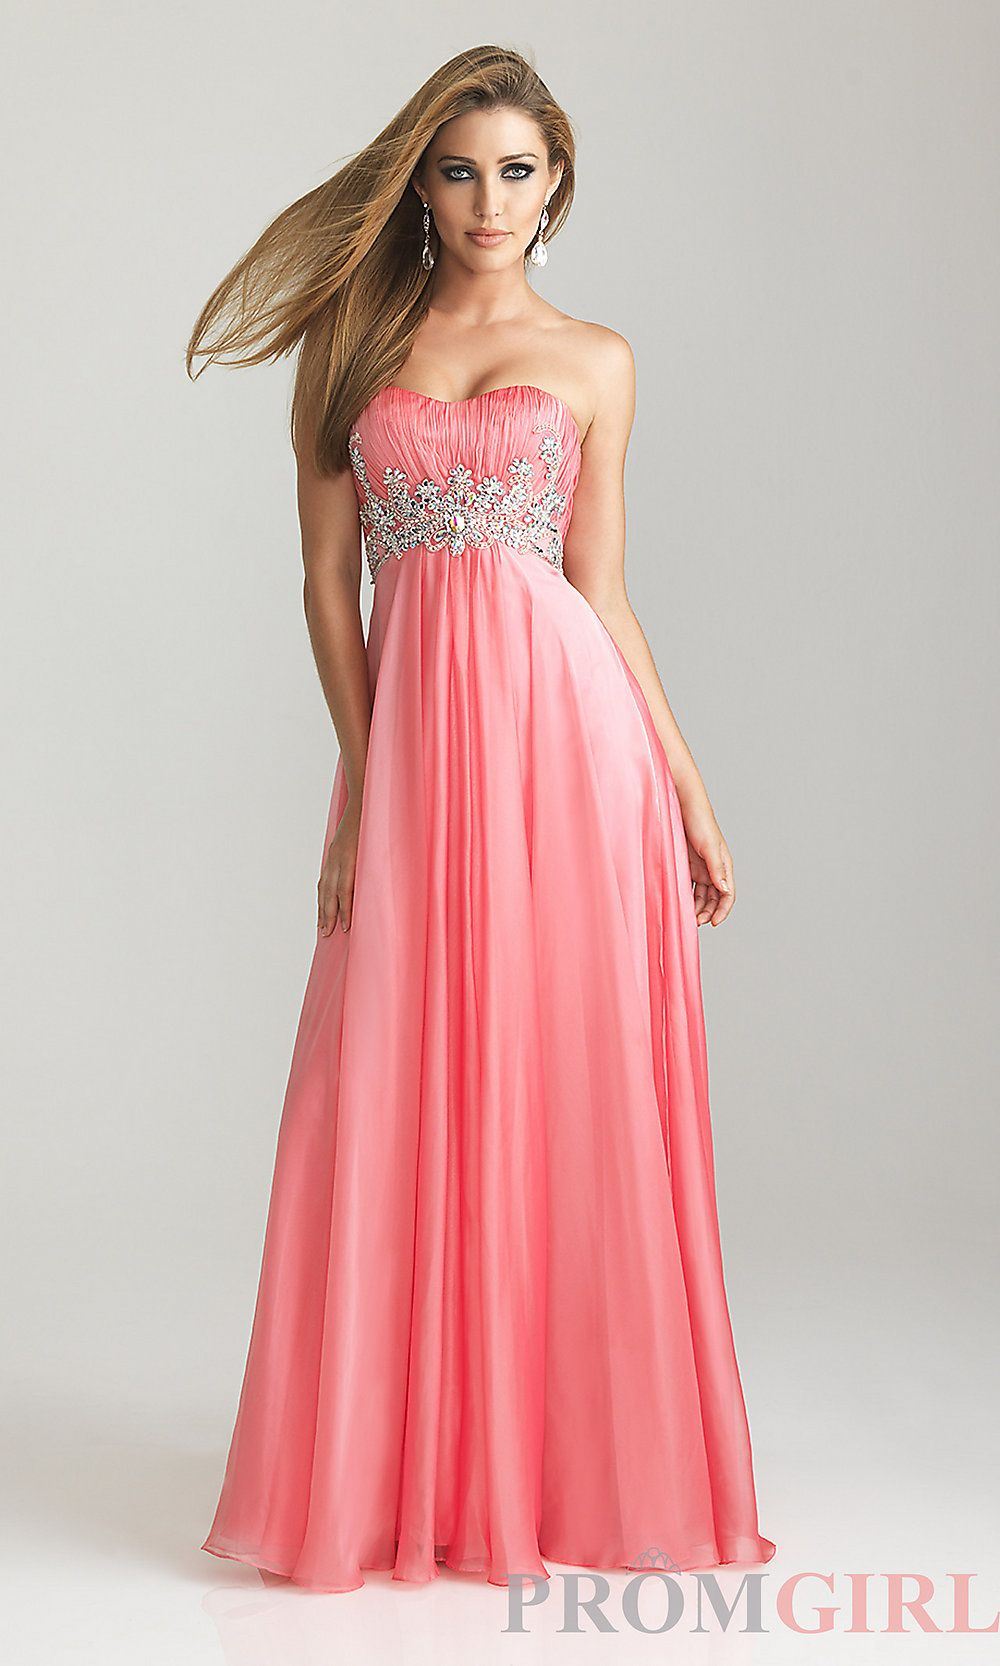 Long strapless prom dresses night moves prom gowns promgirl